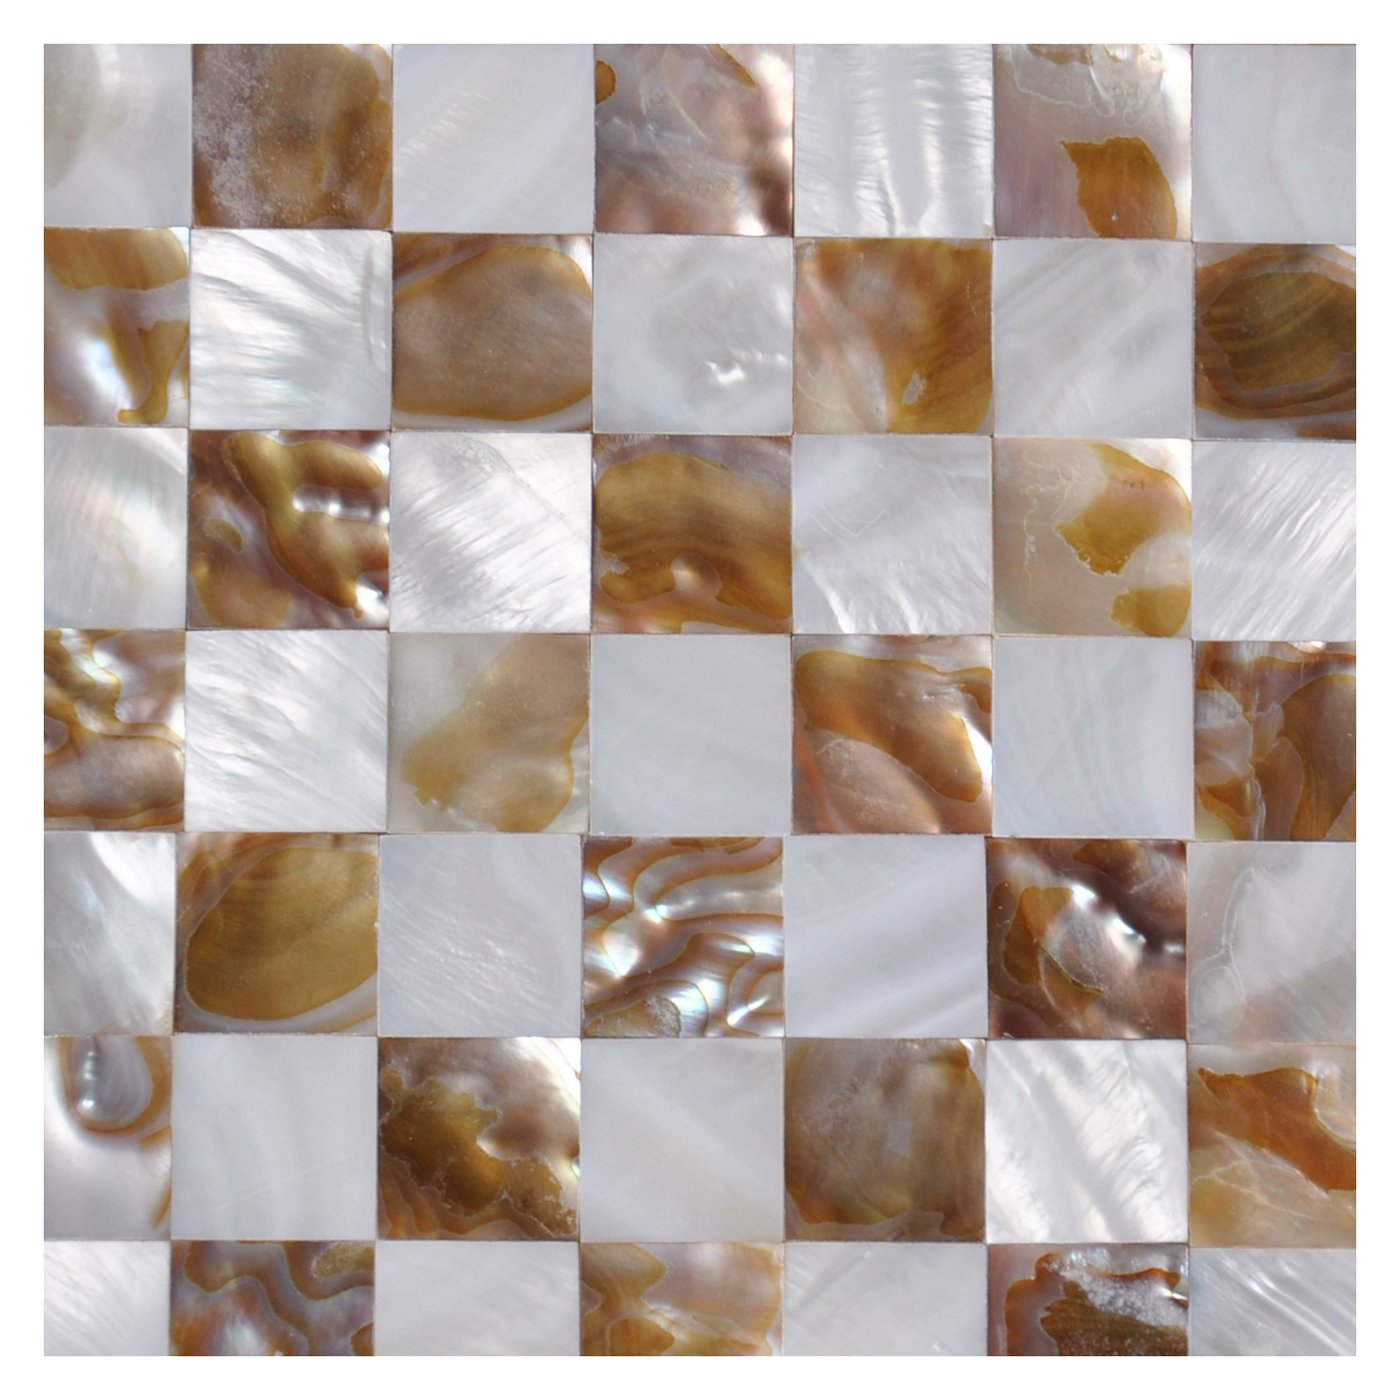 Art3d Mother of Pearl Mosaic Wall Tiles Natural Chess Board 6 Sq Ft Pack of 6